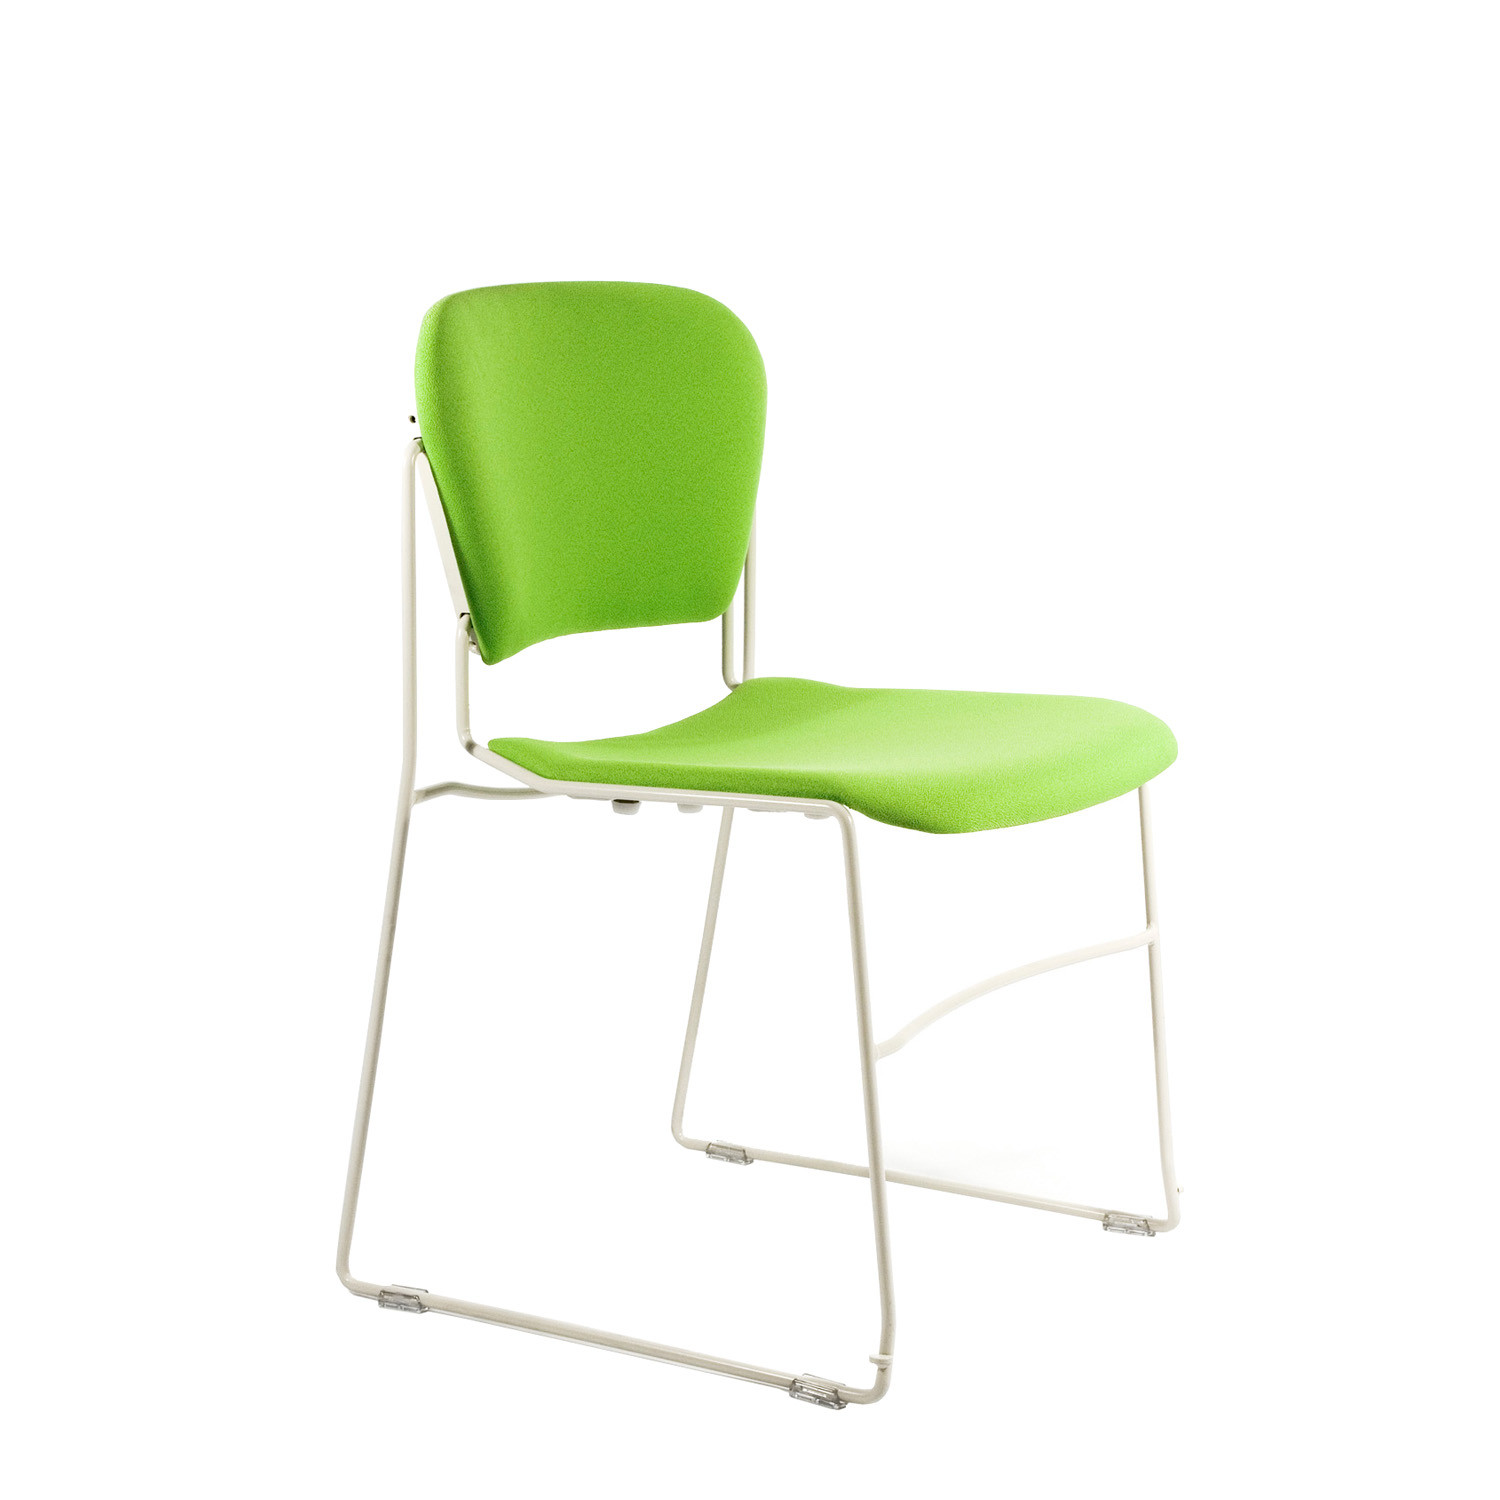 Perry Upholstered Cantilever Chair by KI